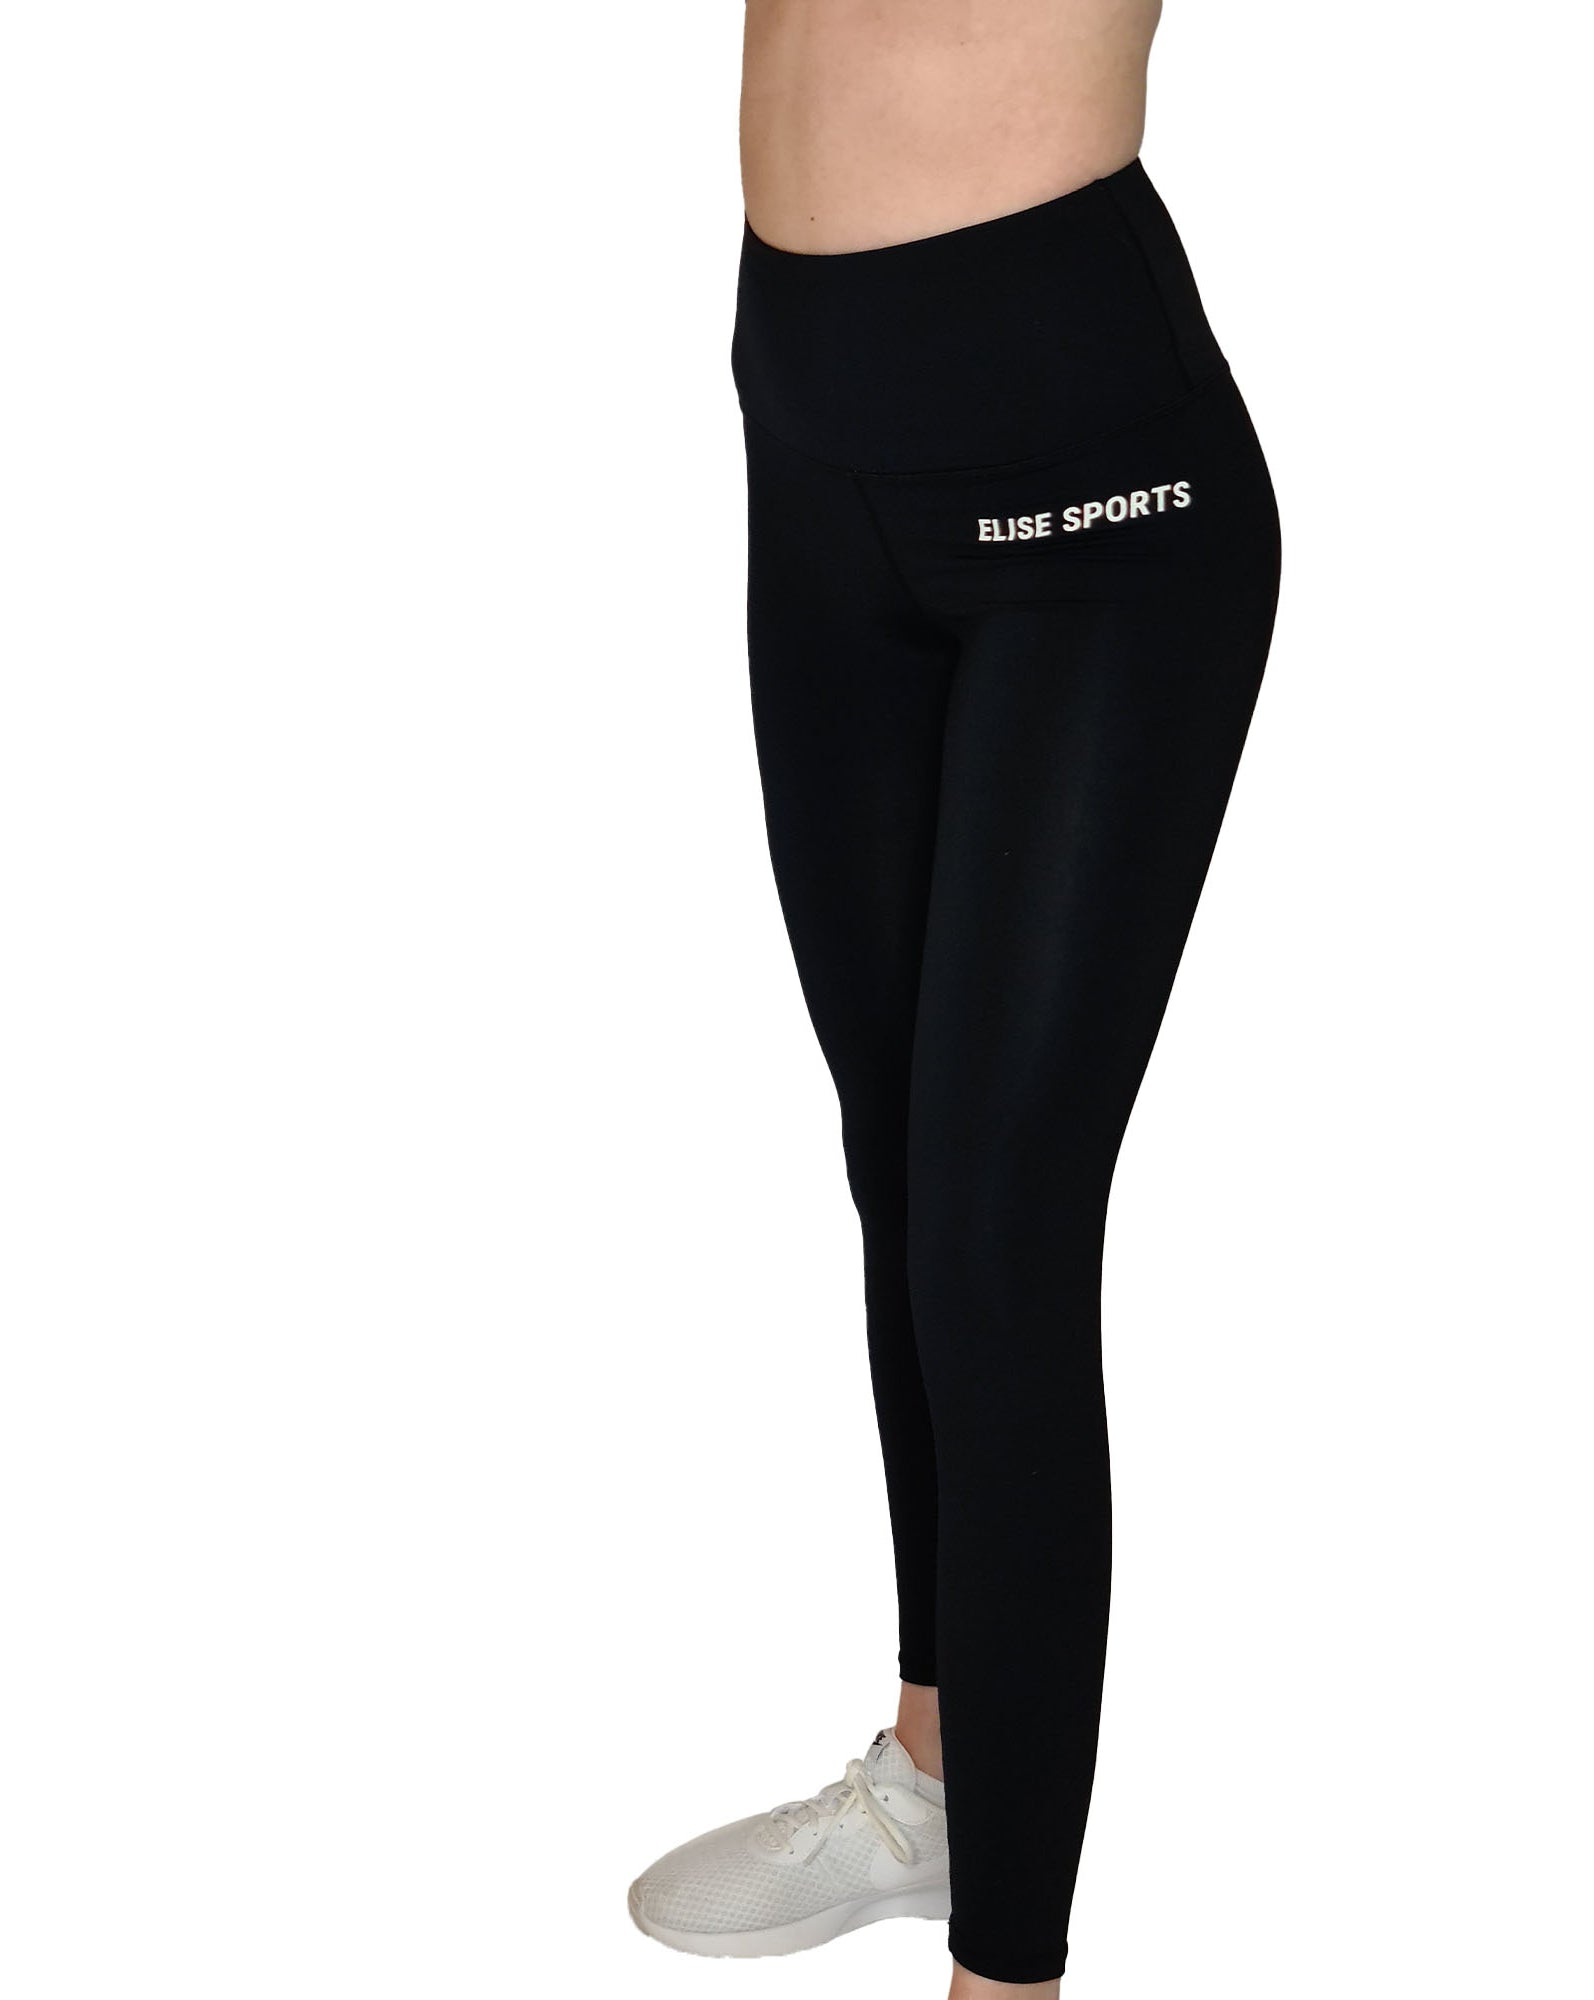 LARA HIGH WAIST BLACK  LEGGINGS-ARTEMIS CLASSIC COLLECTION